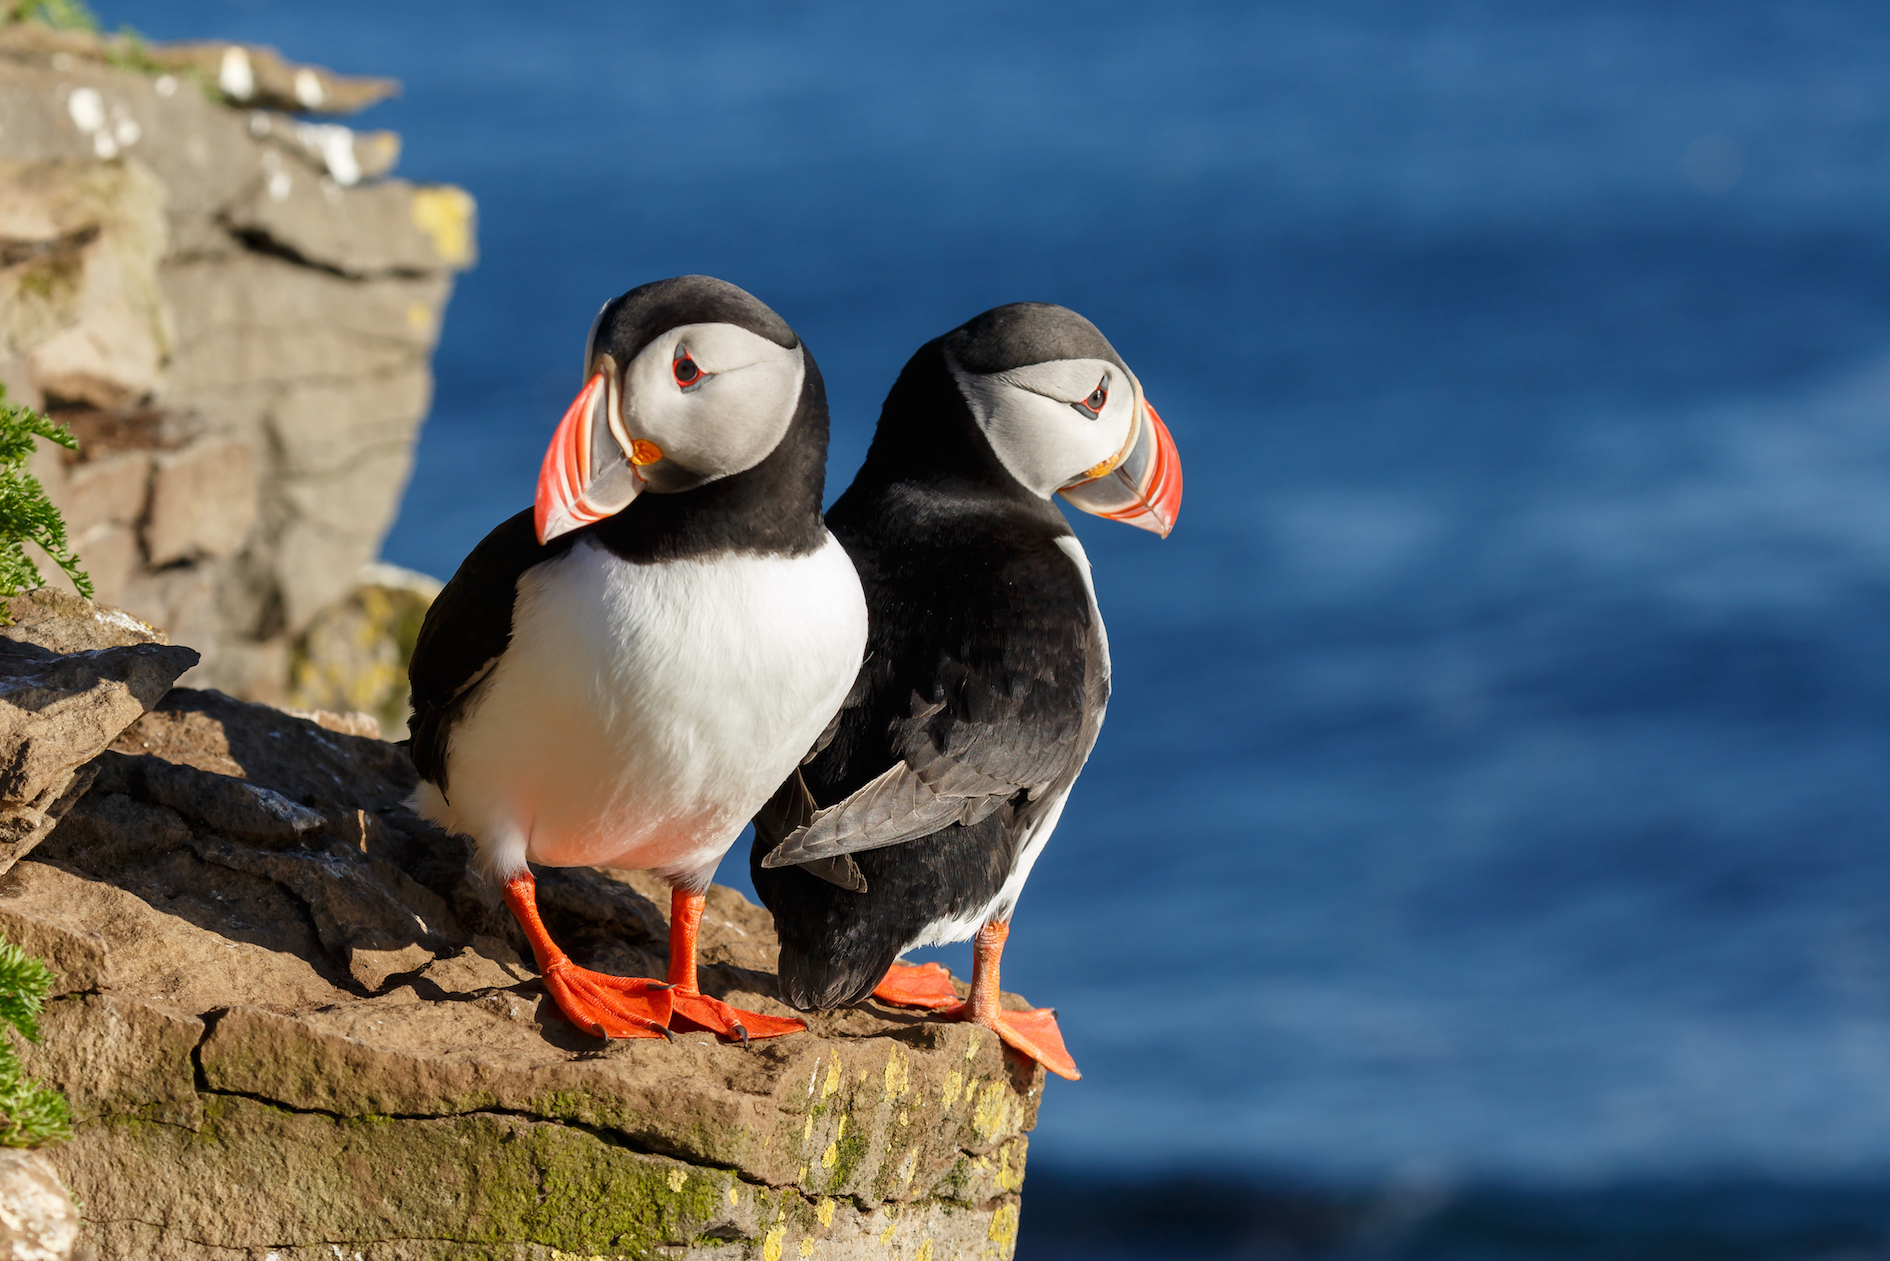 best 28 where do puffins migrate to puffins scout out best migration route portland me. Black Bedroom Furniture Sets. Home Design Ideas